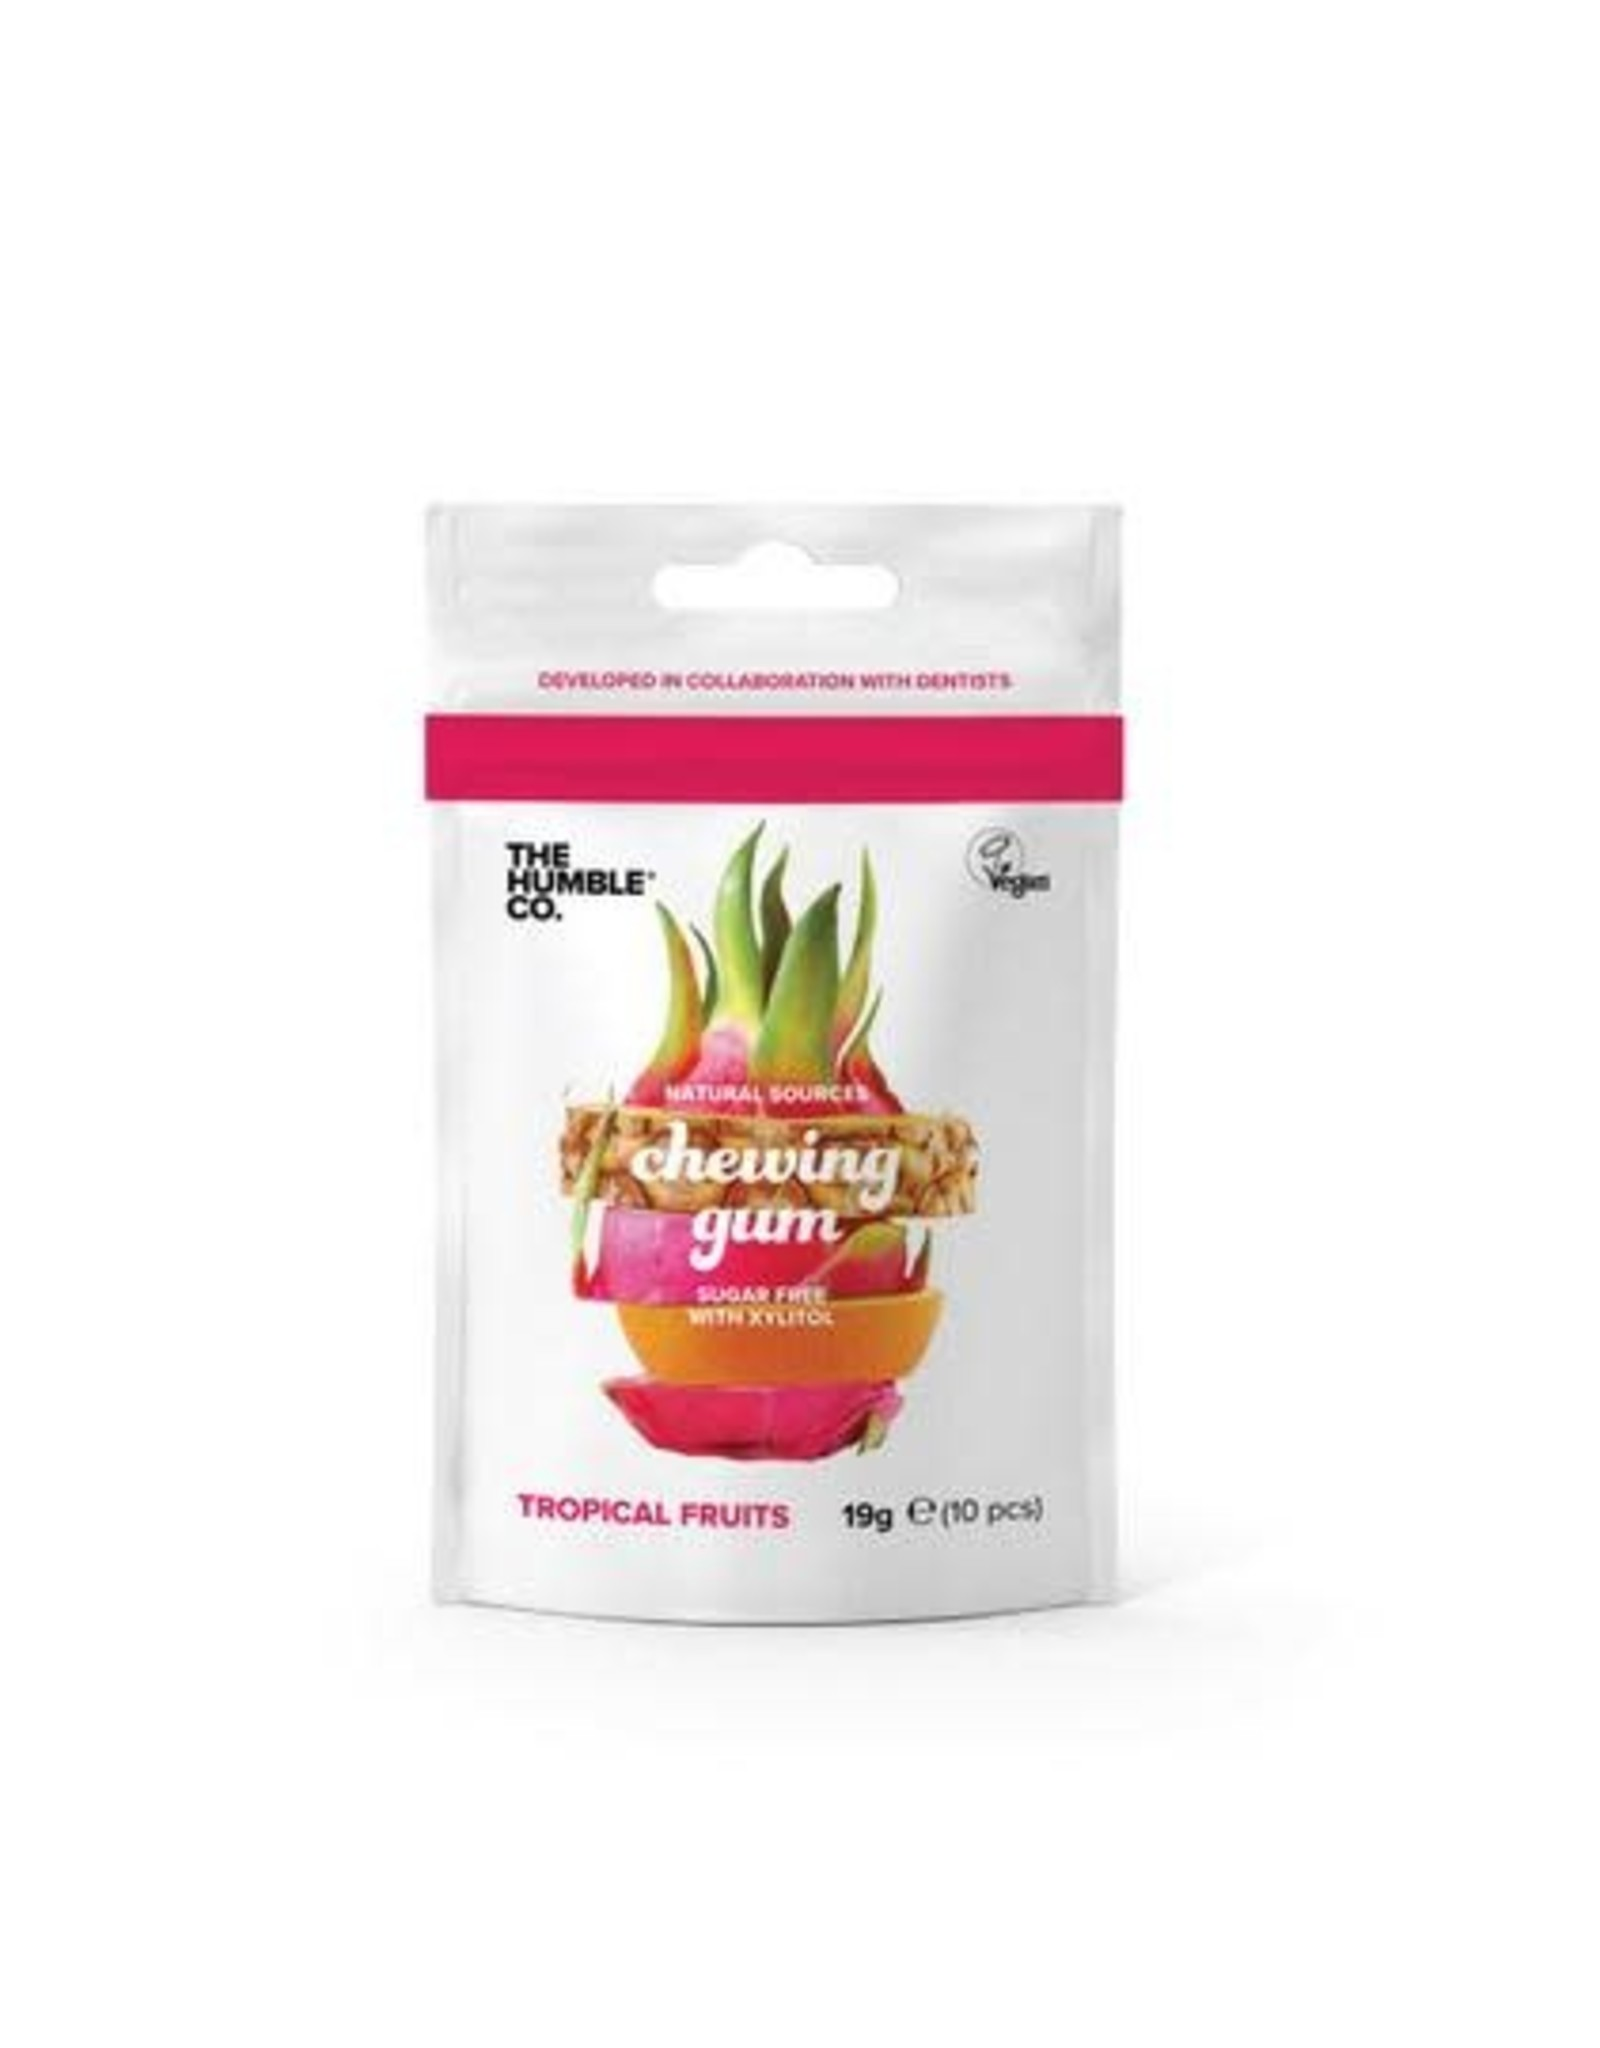 The Humble Co. Humble Chewing Gum sugar free Tropical Fruits 19g